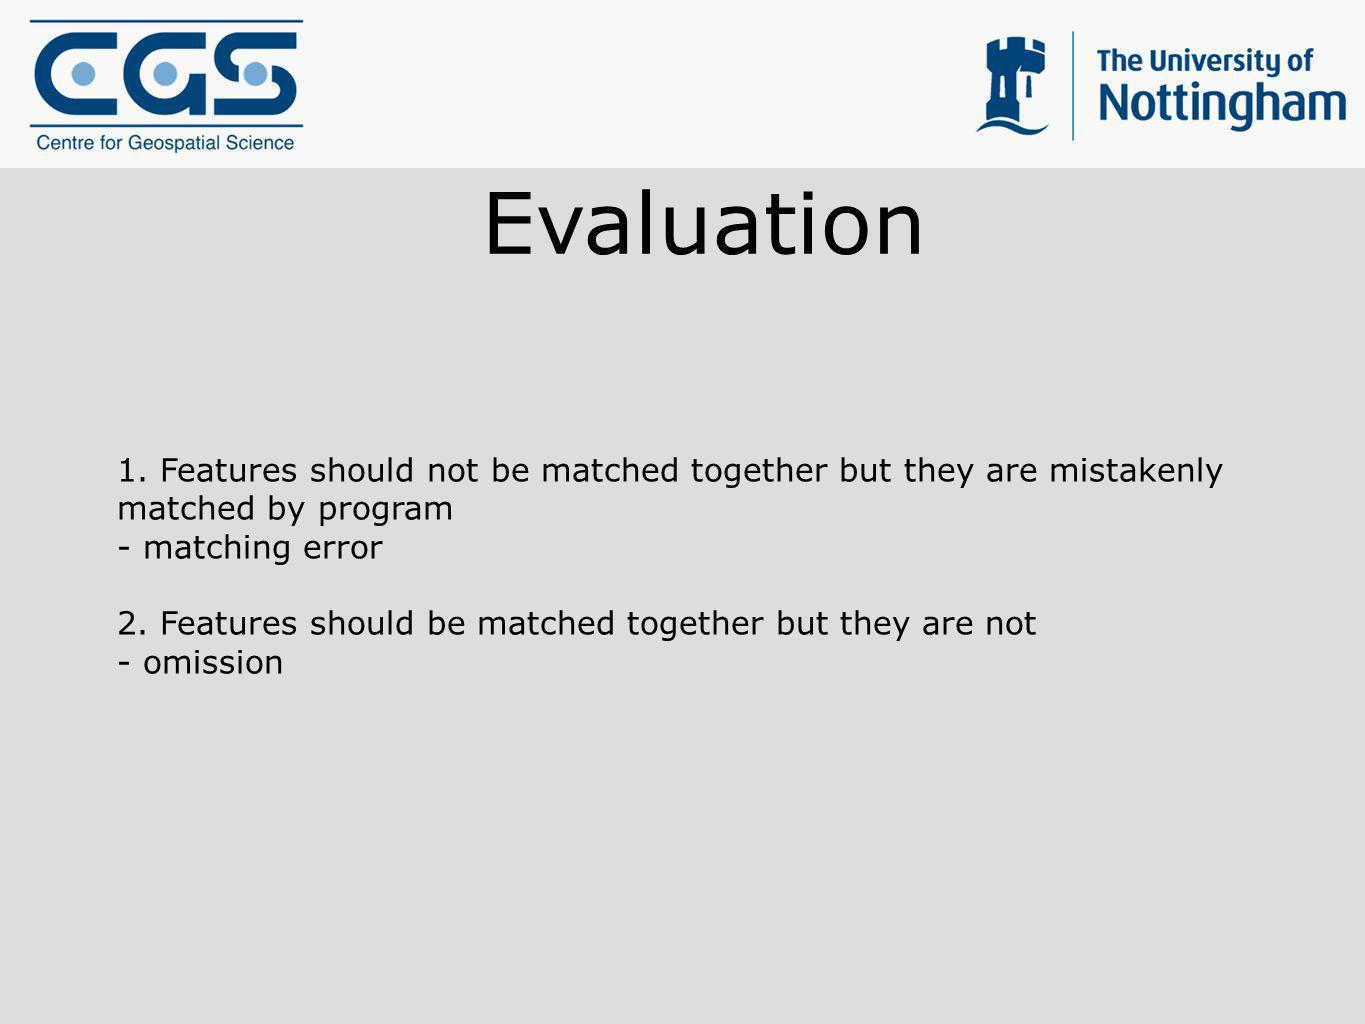 Evaluation 1. Features should not be matched together but they are mistakenly matched by program. - matching error.